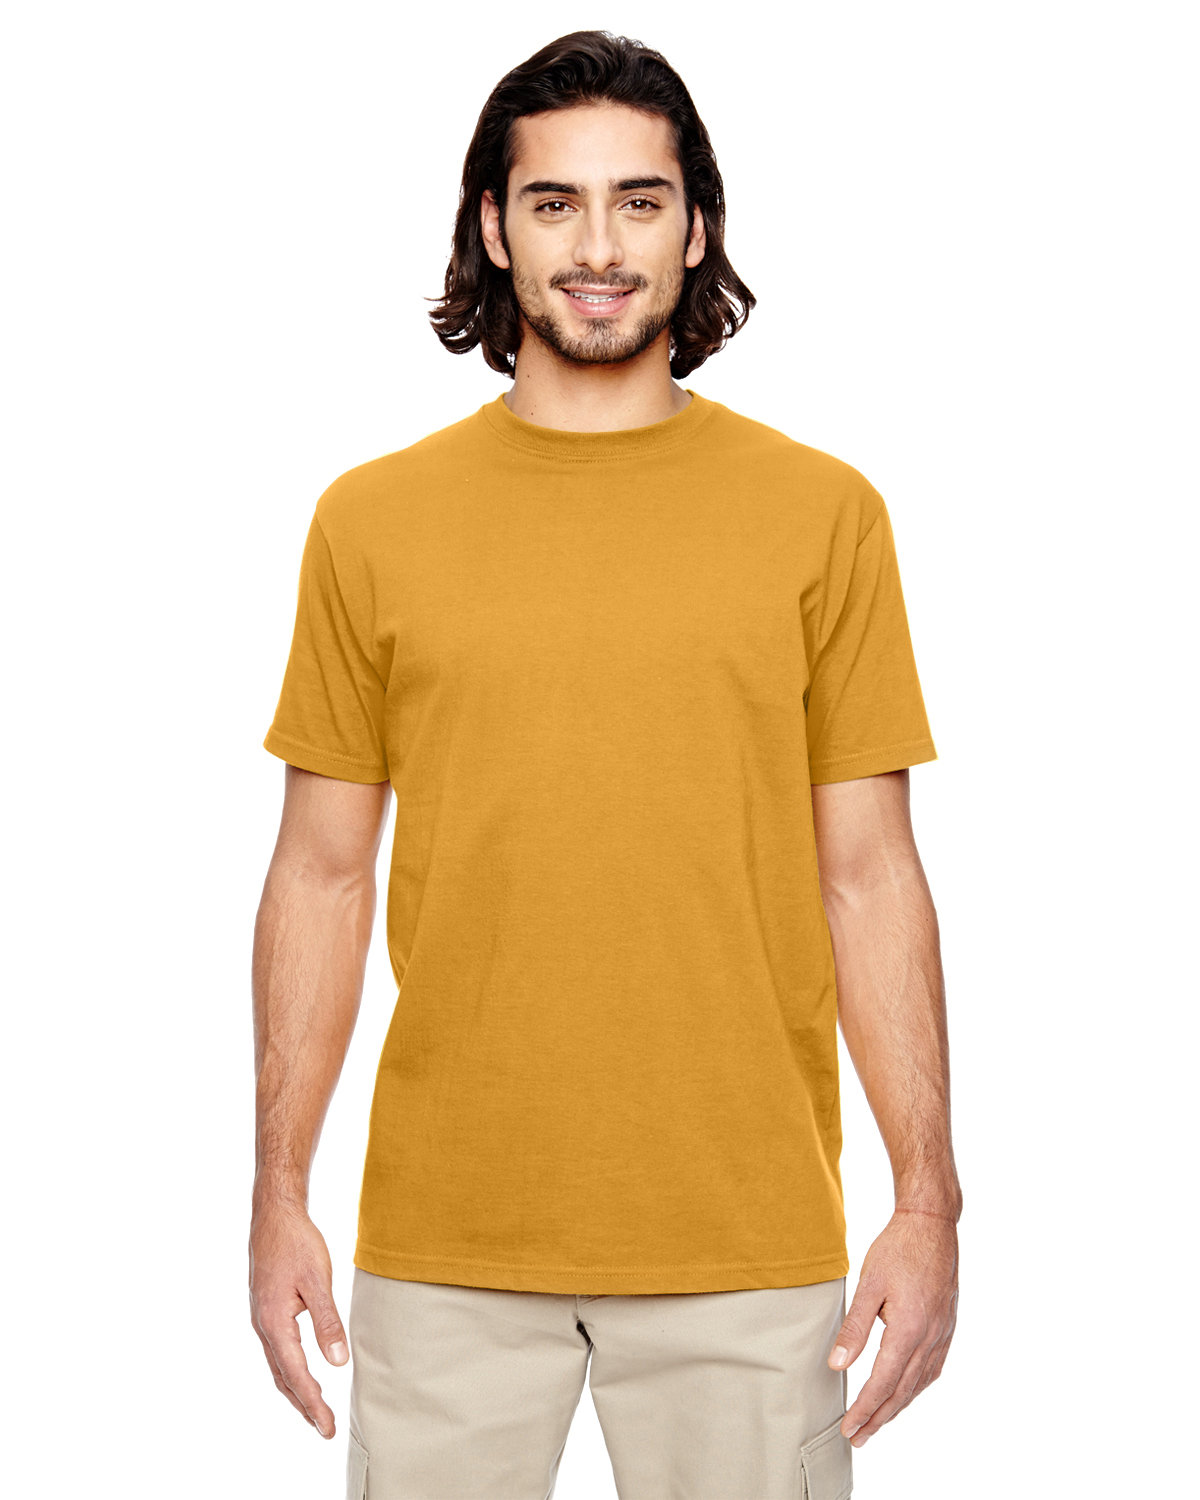 econscious Men's 100% Organic Cotton Classic Short-Sleeve T-Shirt BEEHIVE